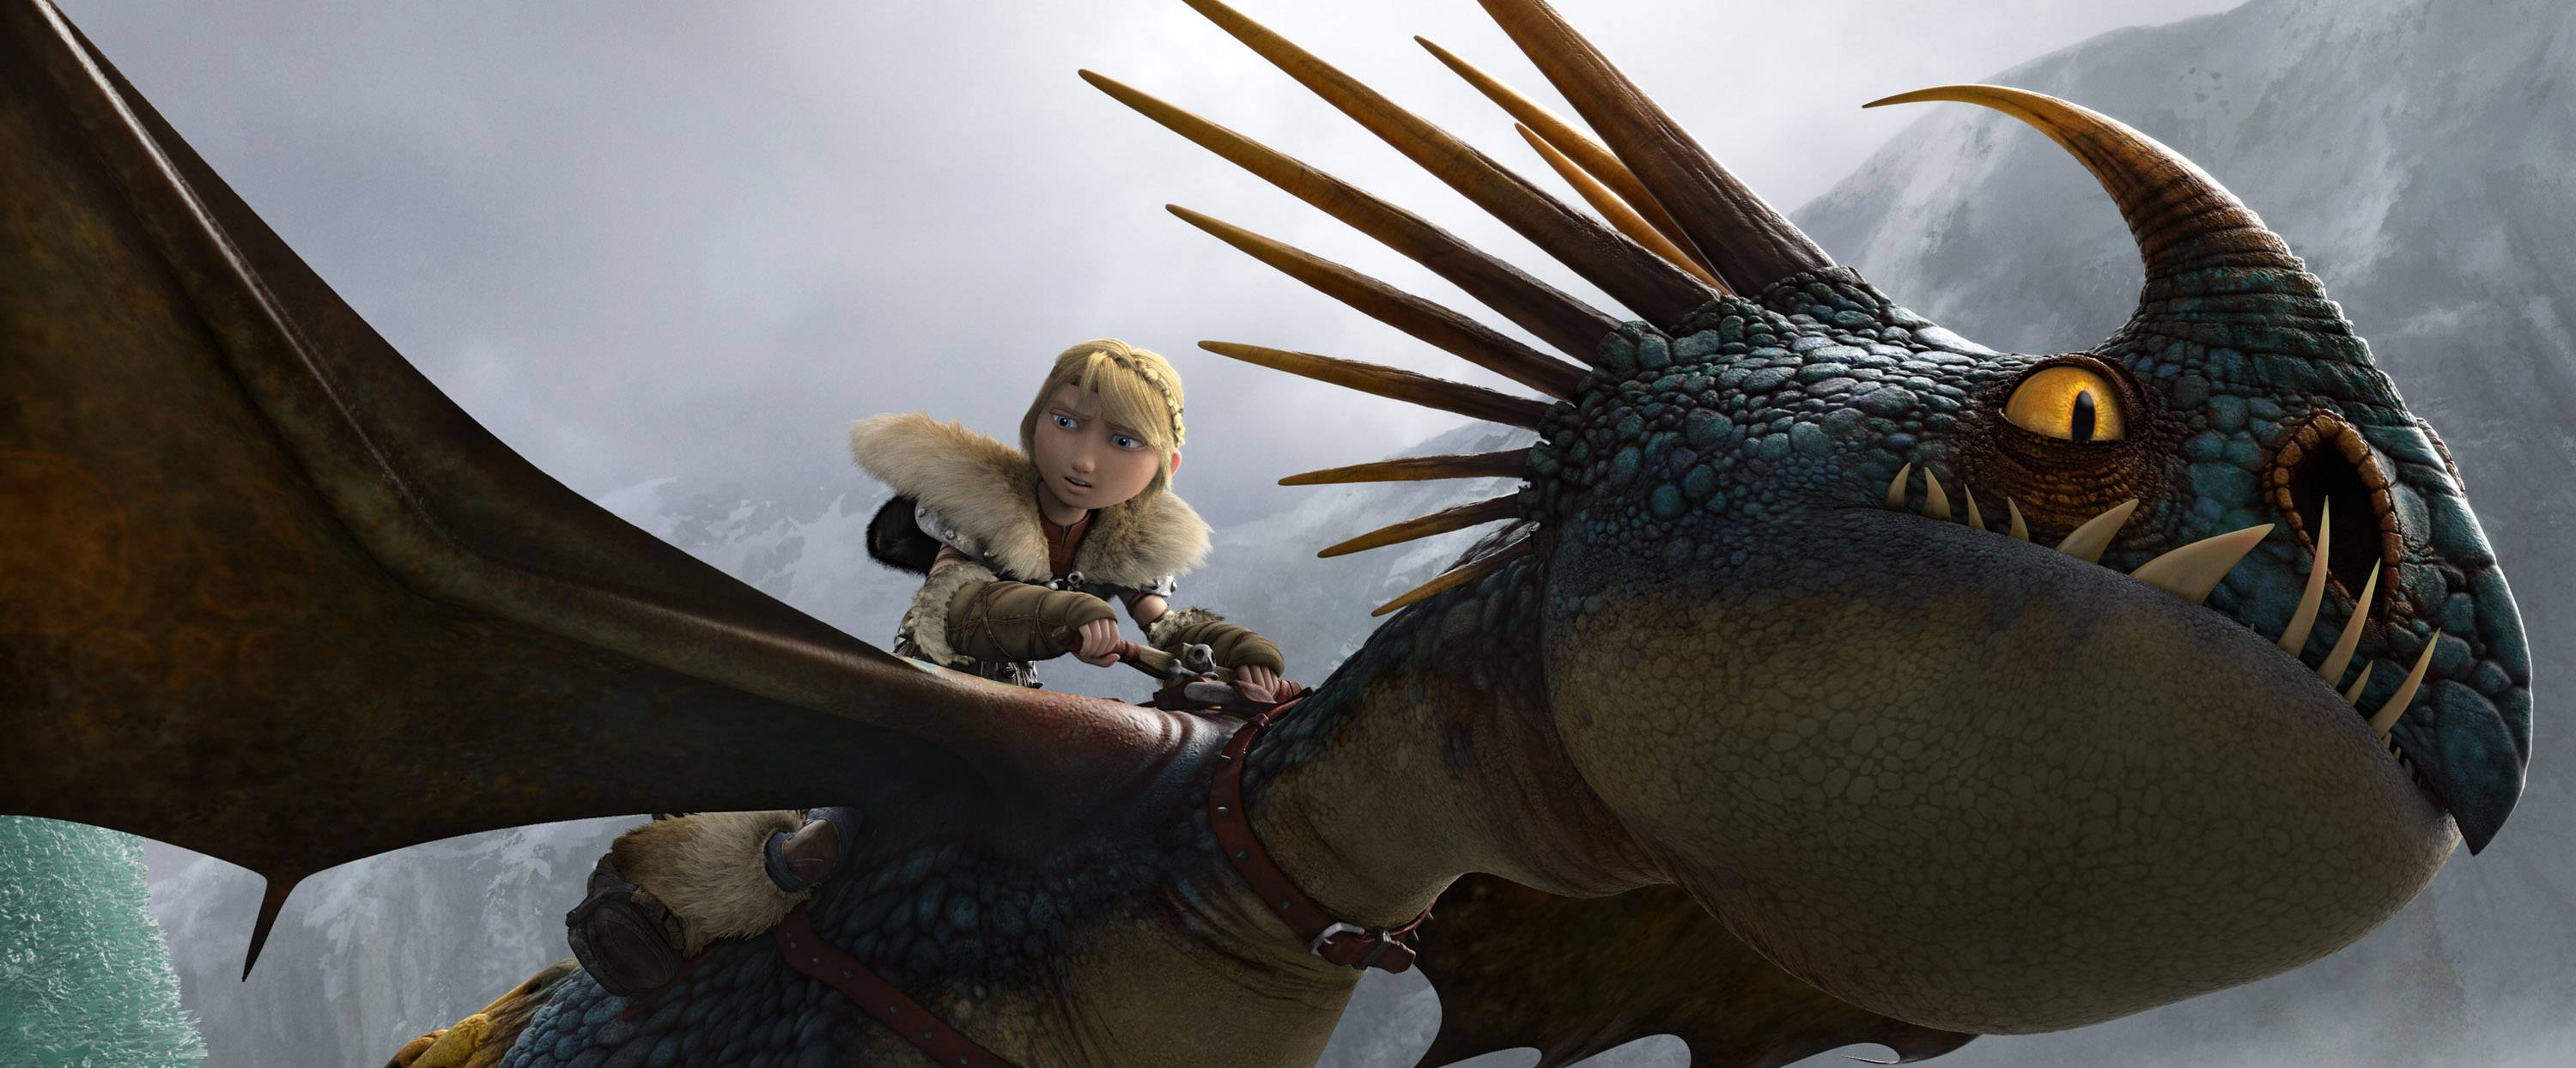 "Astrid (voiced by America Ferrera) sets off on an adventure in ""How To Train Your Dragon 2."""